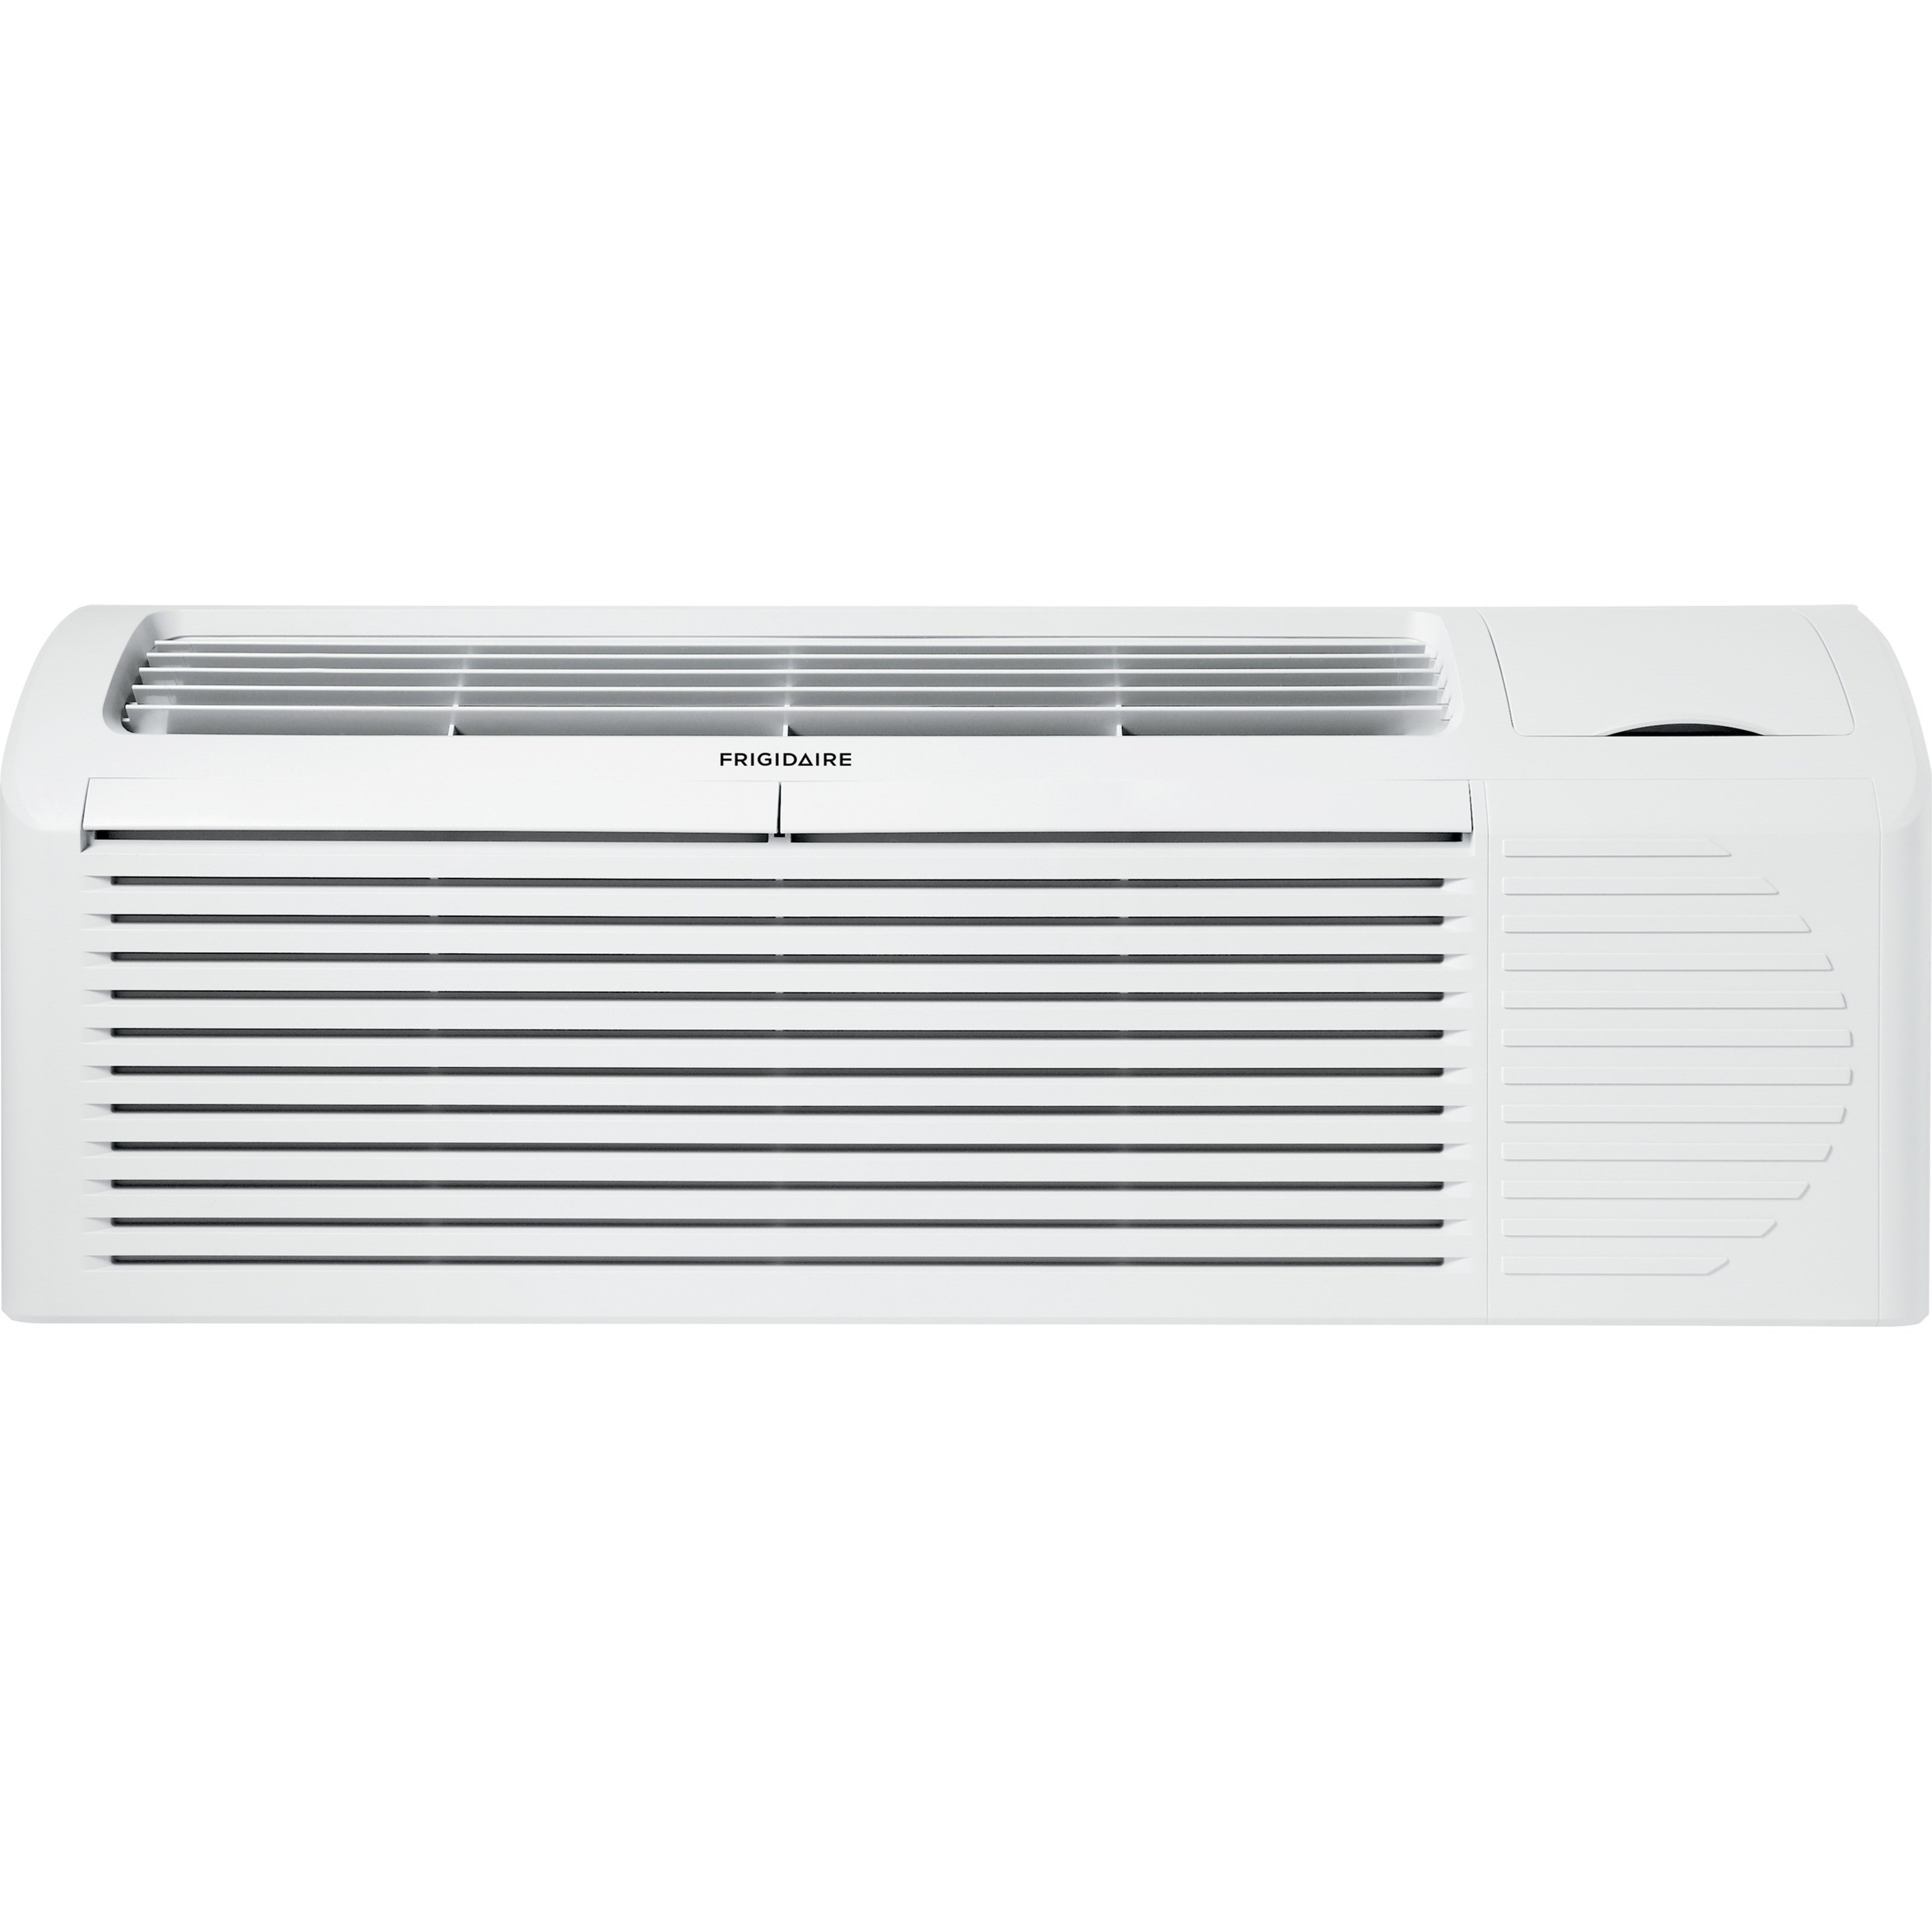 Air Conditioners PTAC unit with Electric Heat 9,000 BTU by Frigidaire at Fisher Home Furnishings